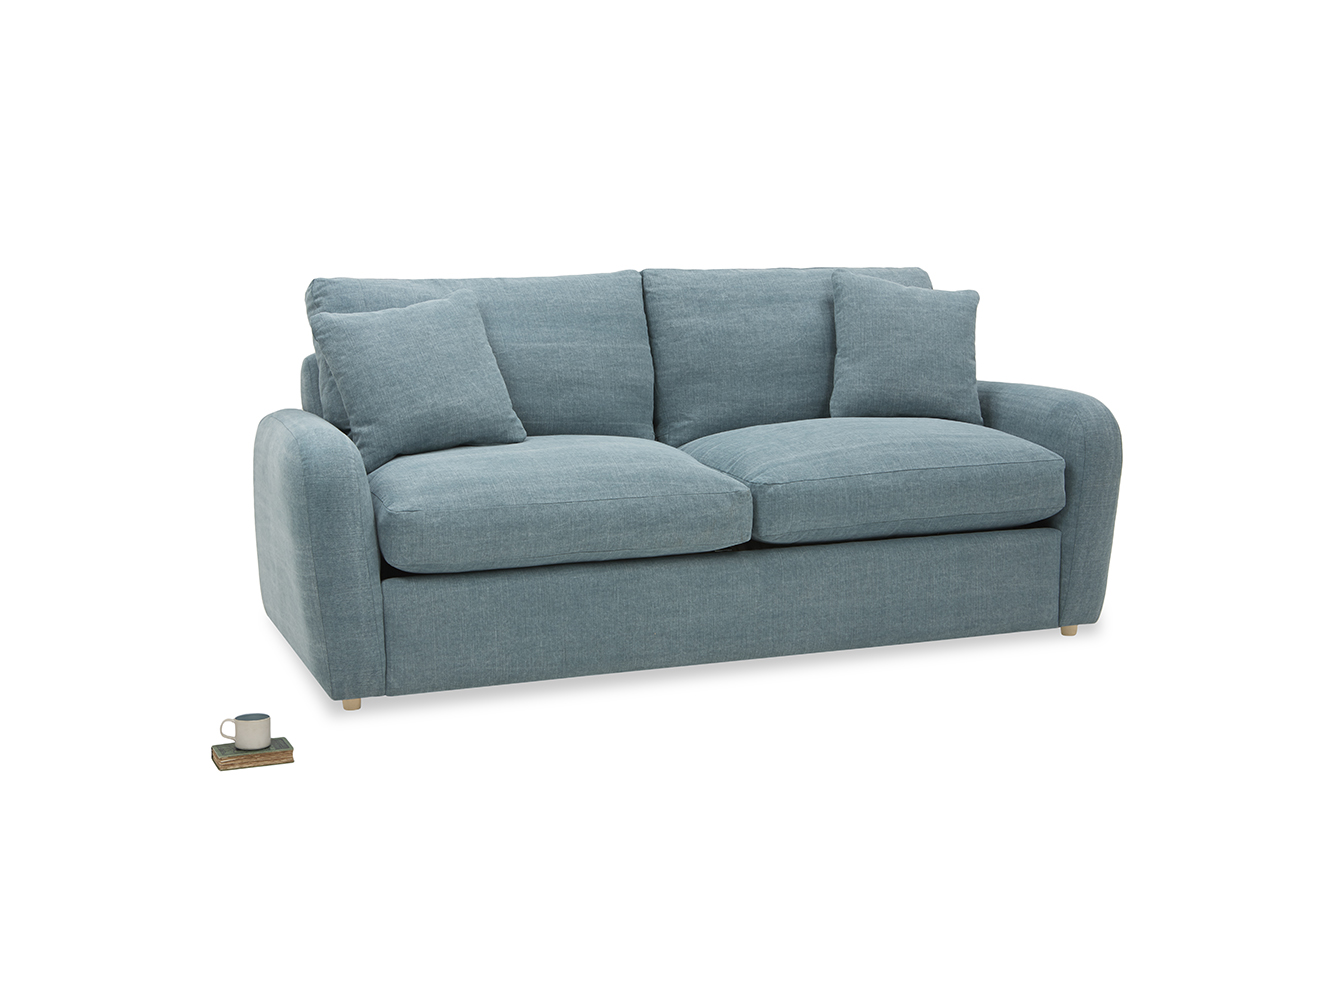 Easy Squeeze Sofa Bed Comfy Double